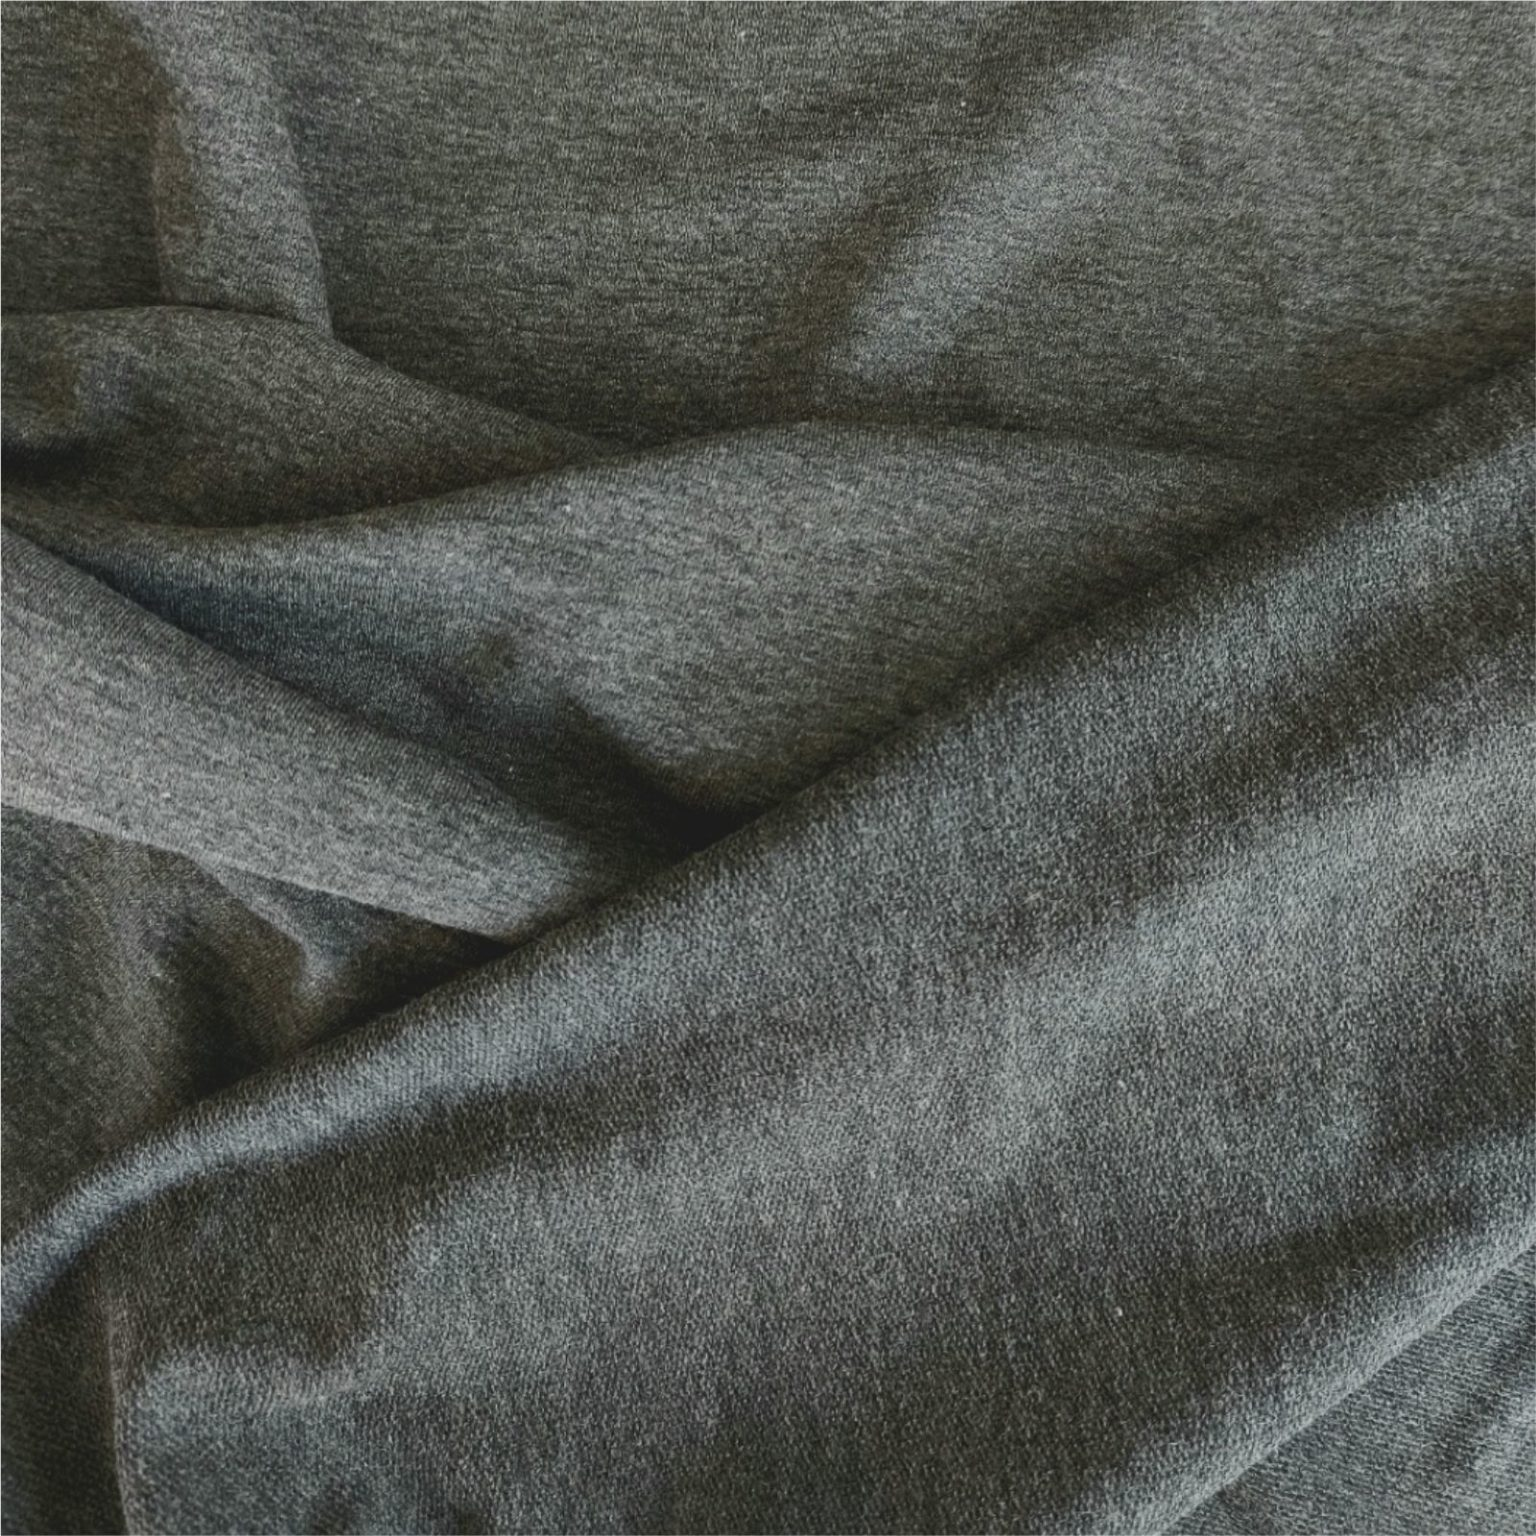 Charcoal Grey Melange French Terry Jersey | More Sewing